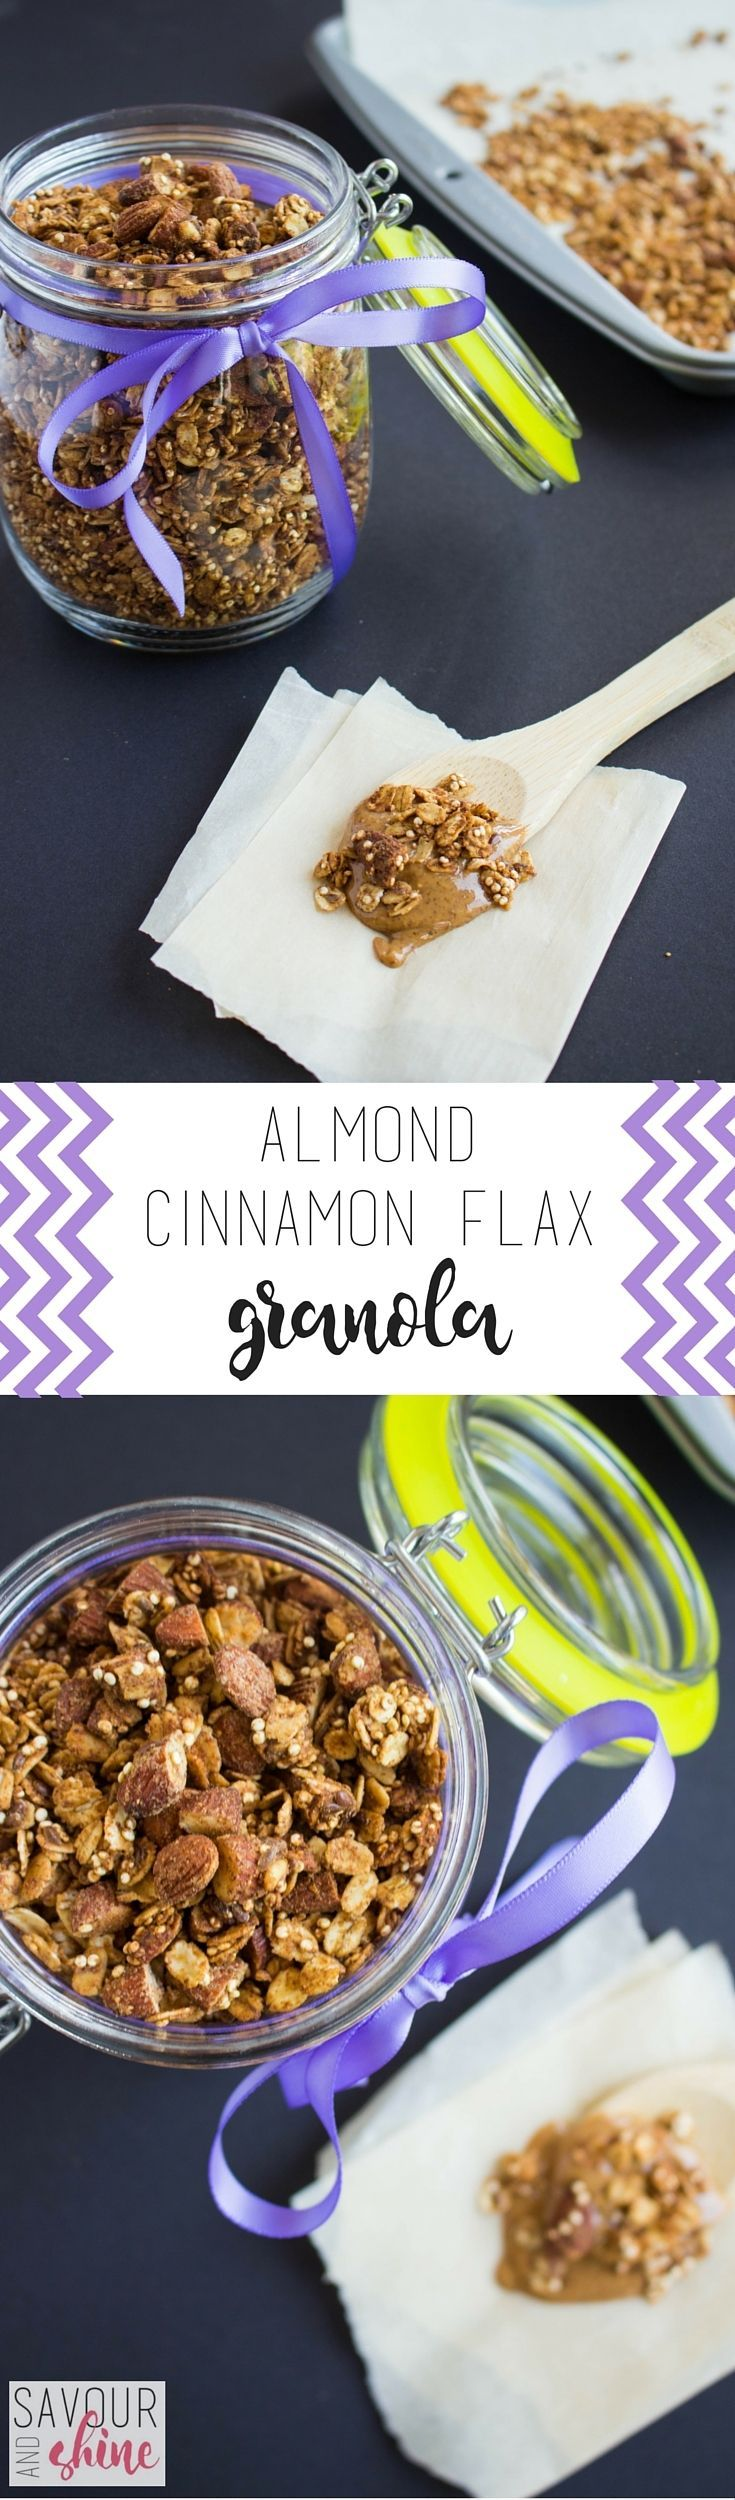 This Gluten-Free Almond Cinnamon Flax Granola is ready in less than 45 minutes and SO delicious! Perfect to have on hand for the week. www.savourandshin...